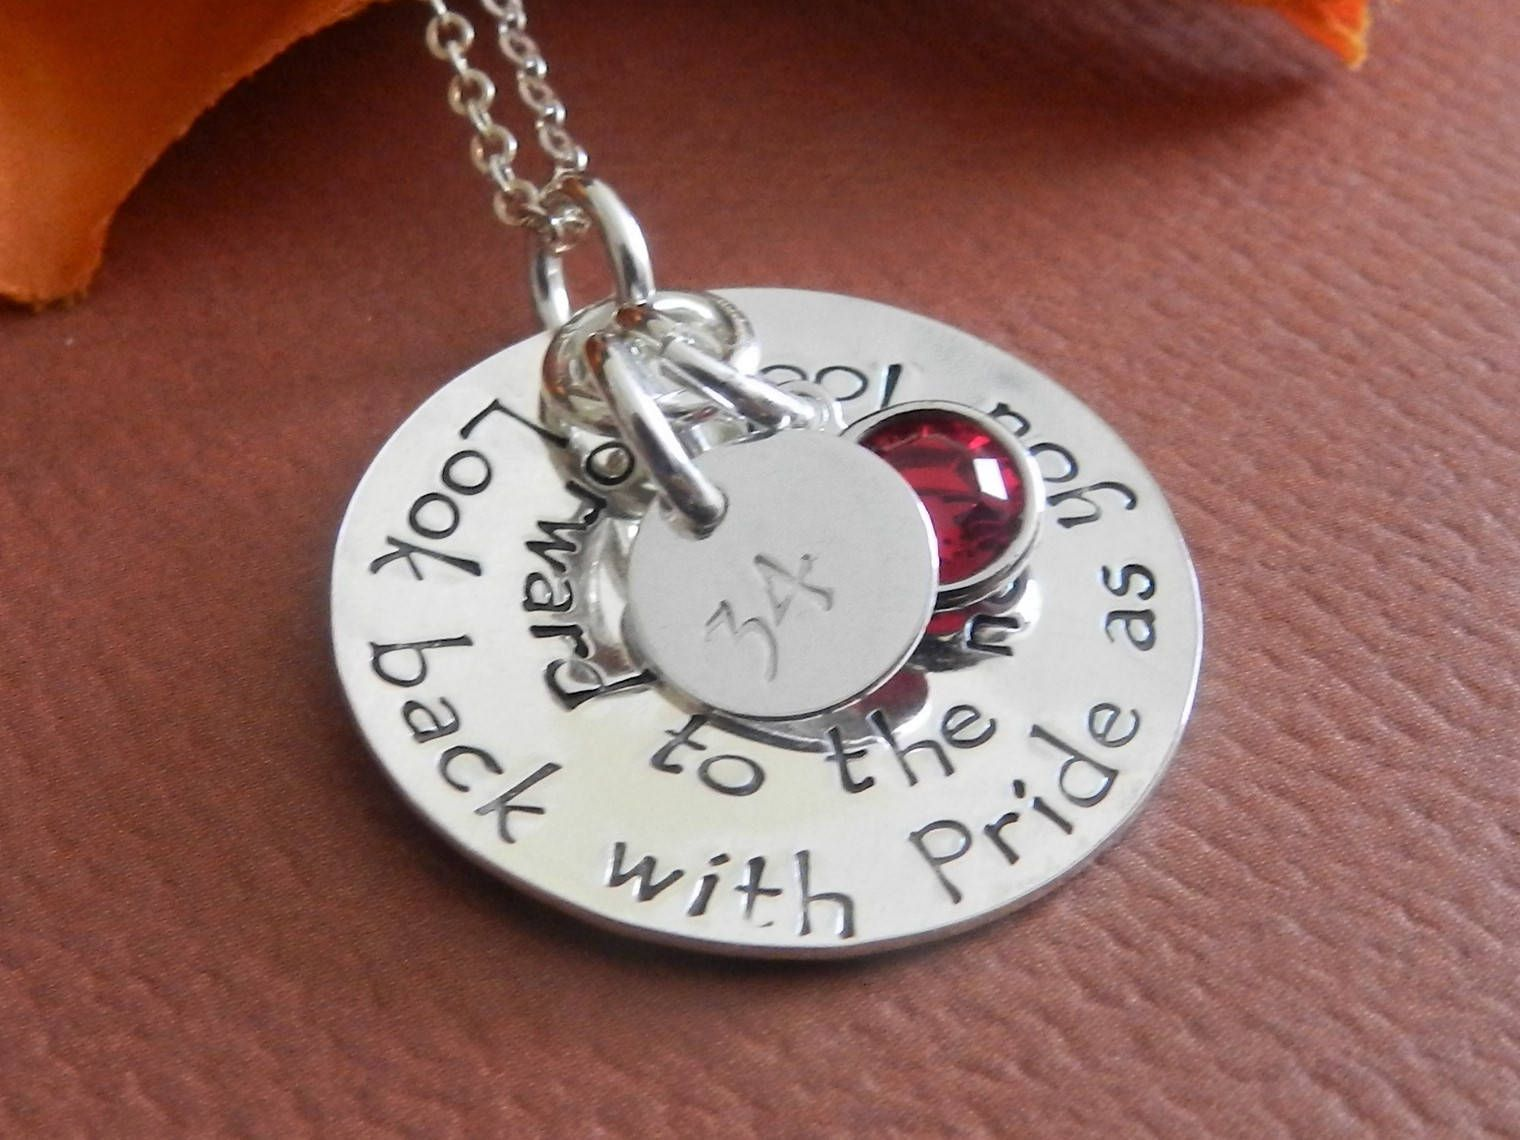 Inspirational retirement gifts for women in sterling